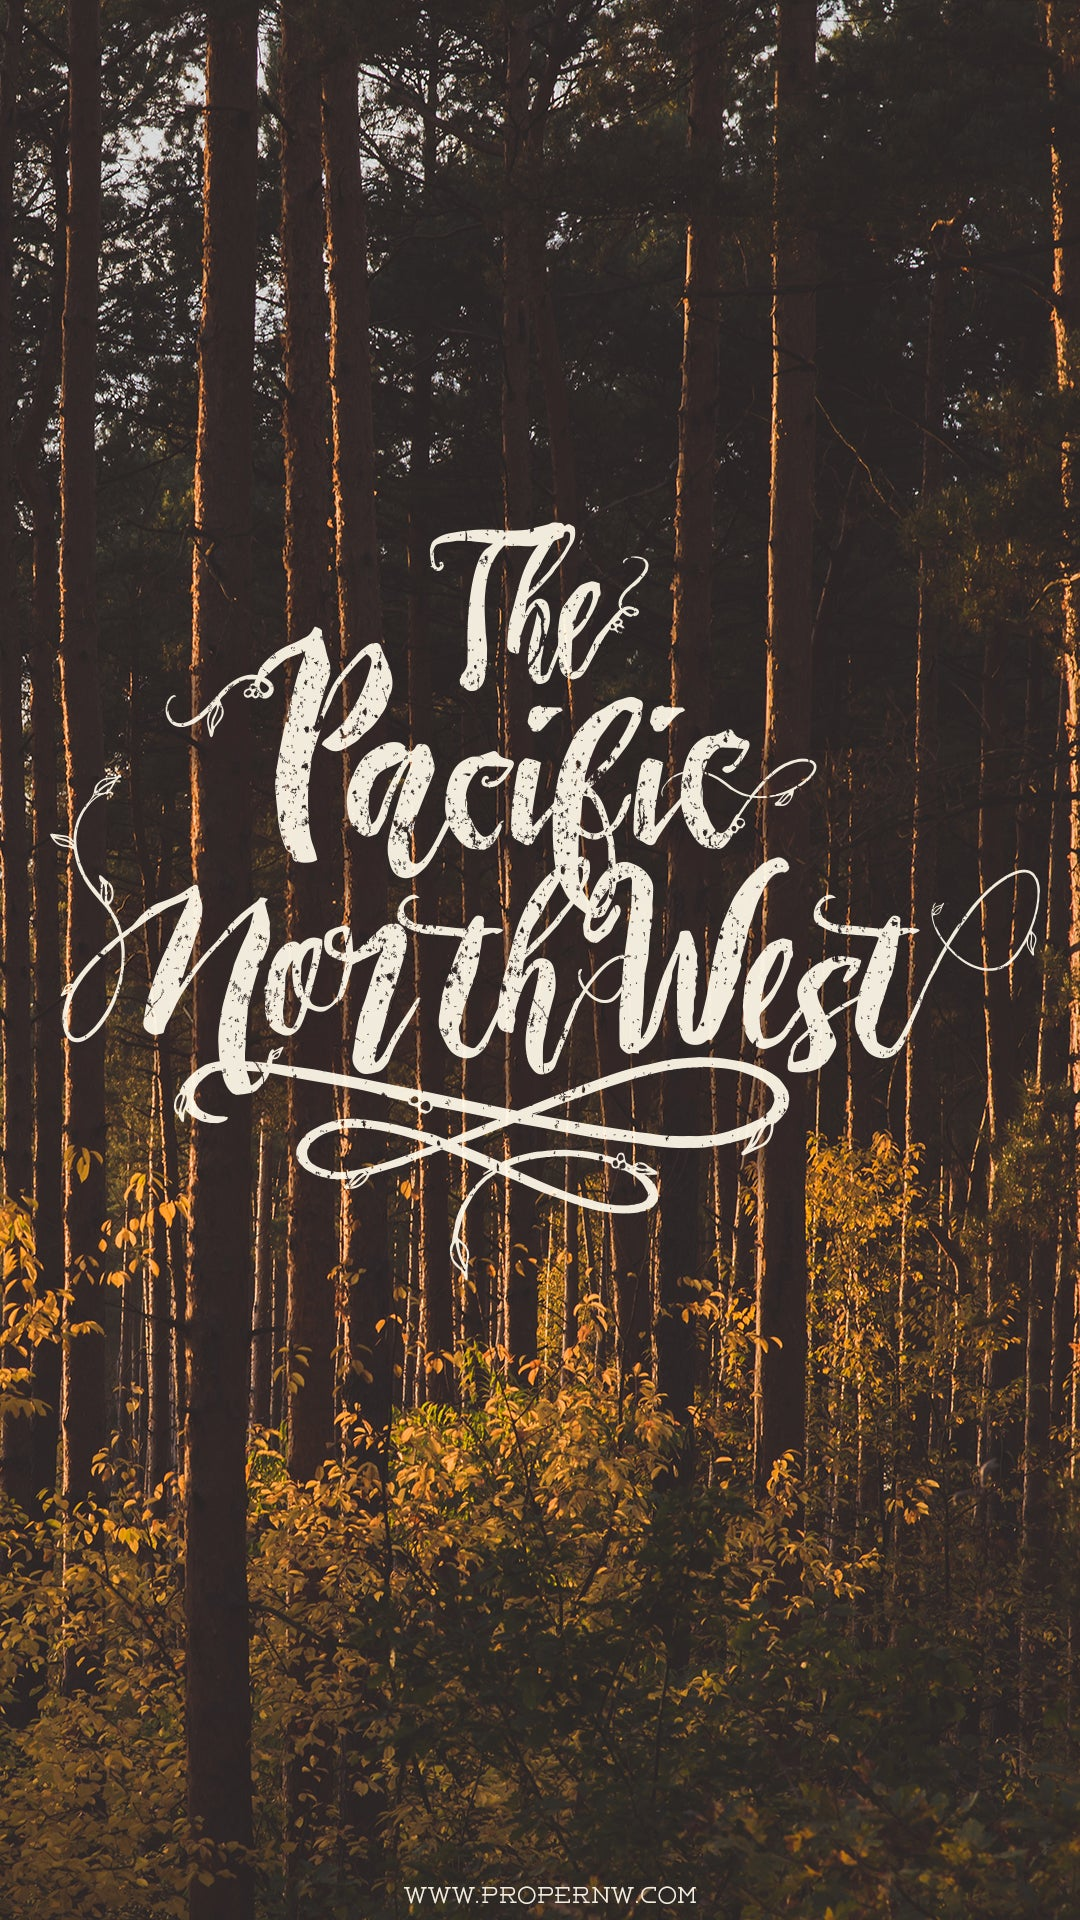 PNW Wallpaper Wednesday 7